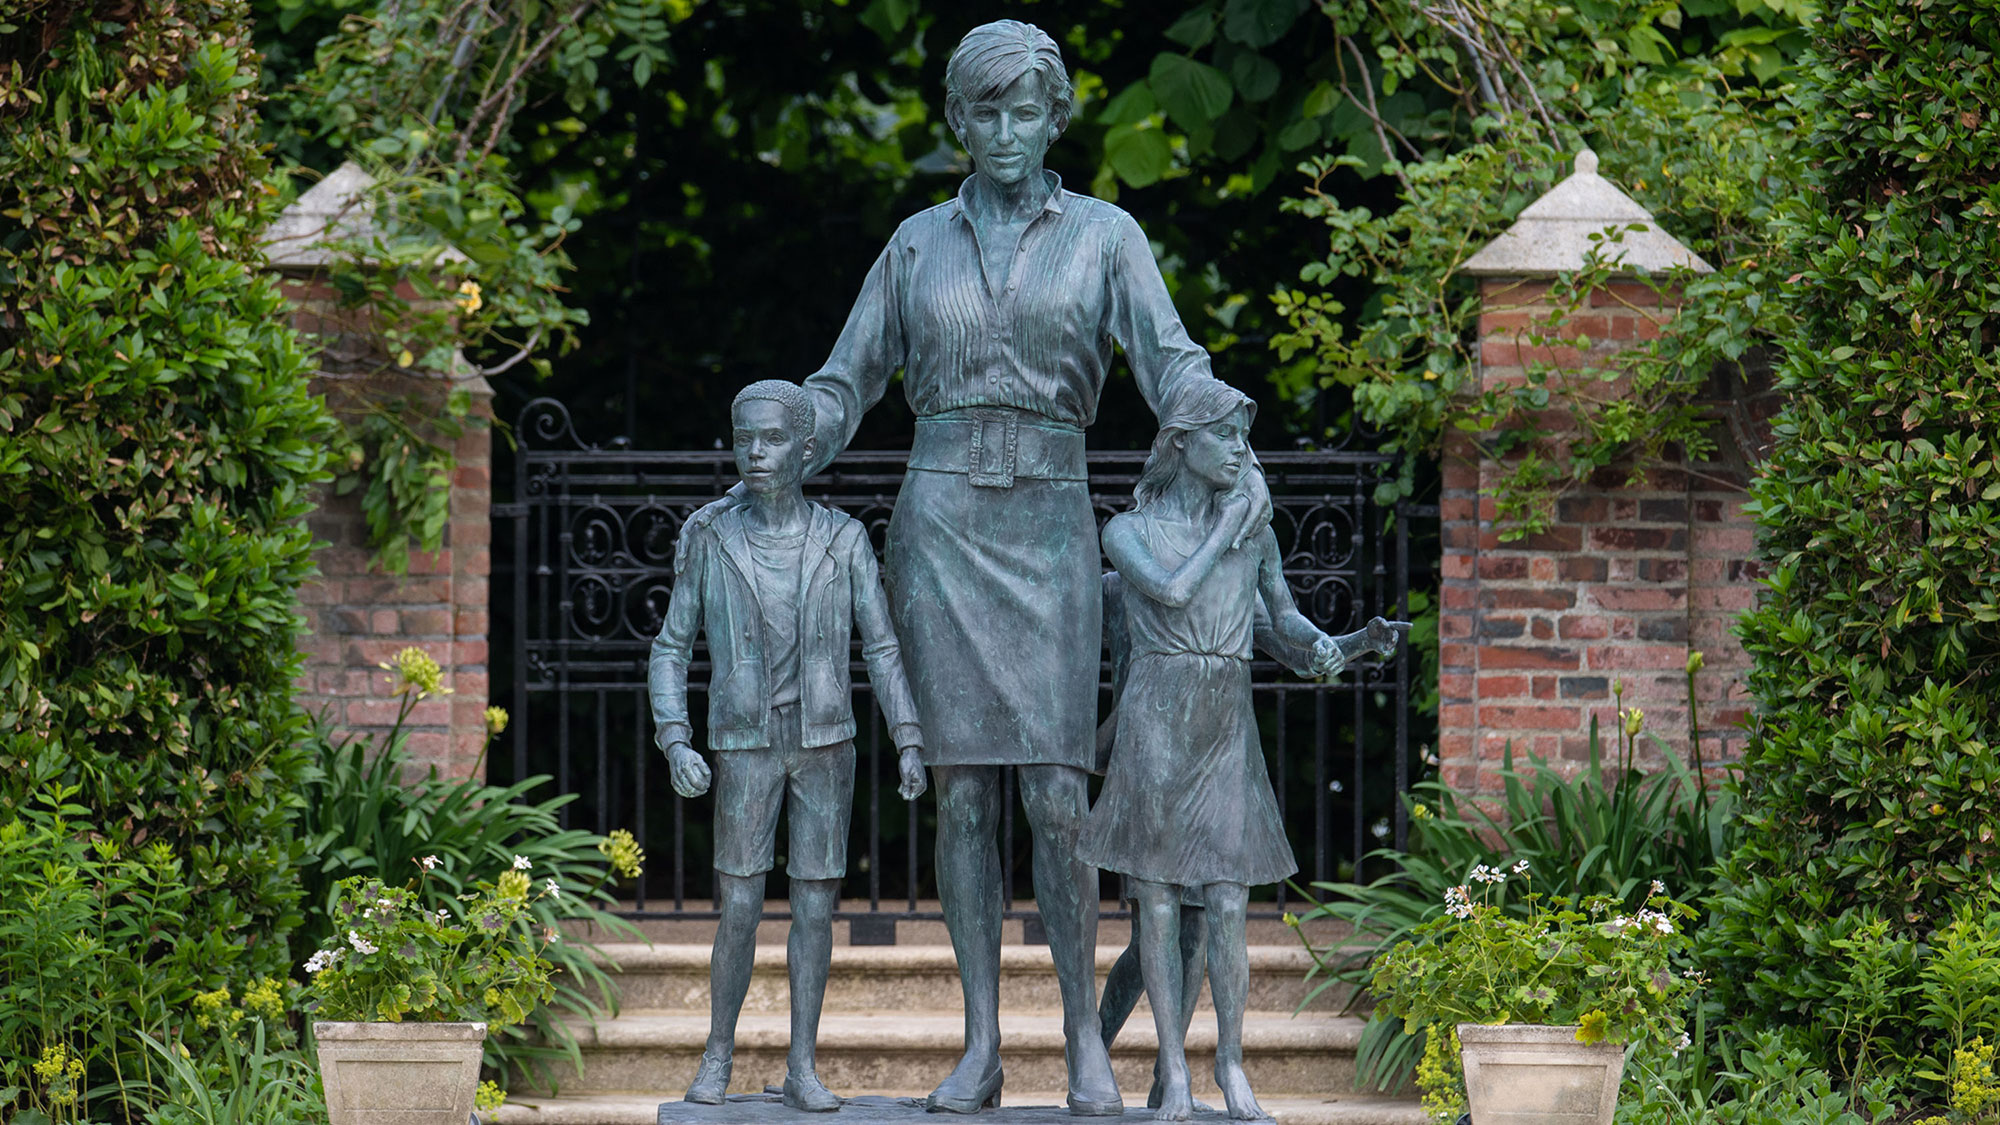 The significance behind the Princess Diana statue outfit